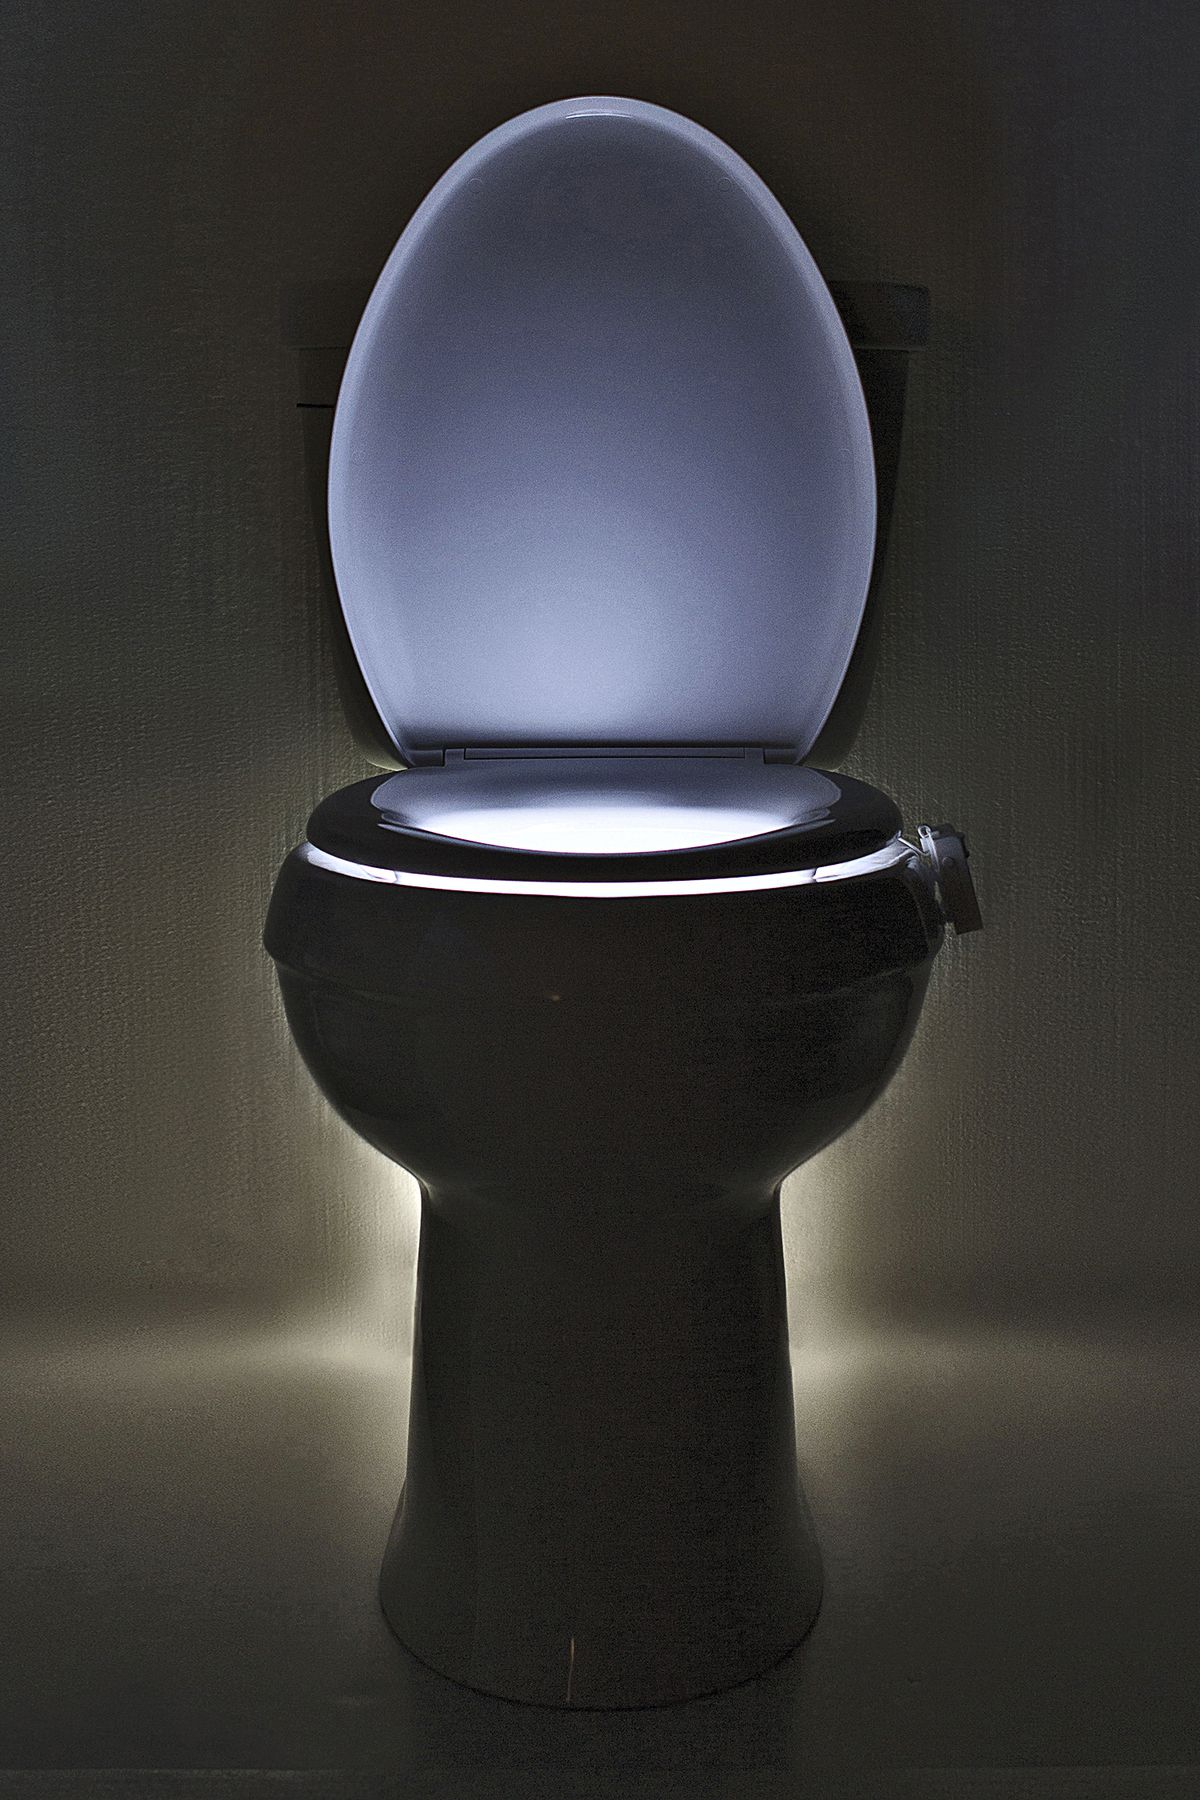 Lighted toilet seat.